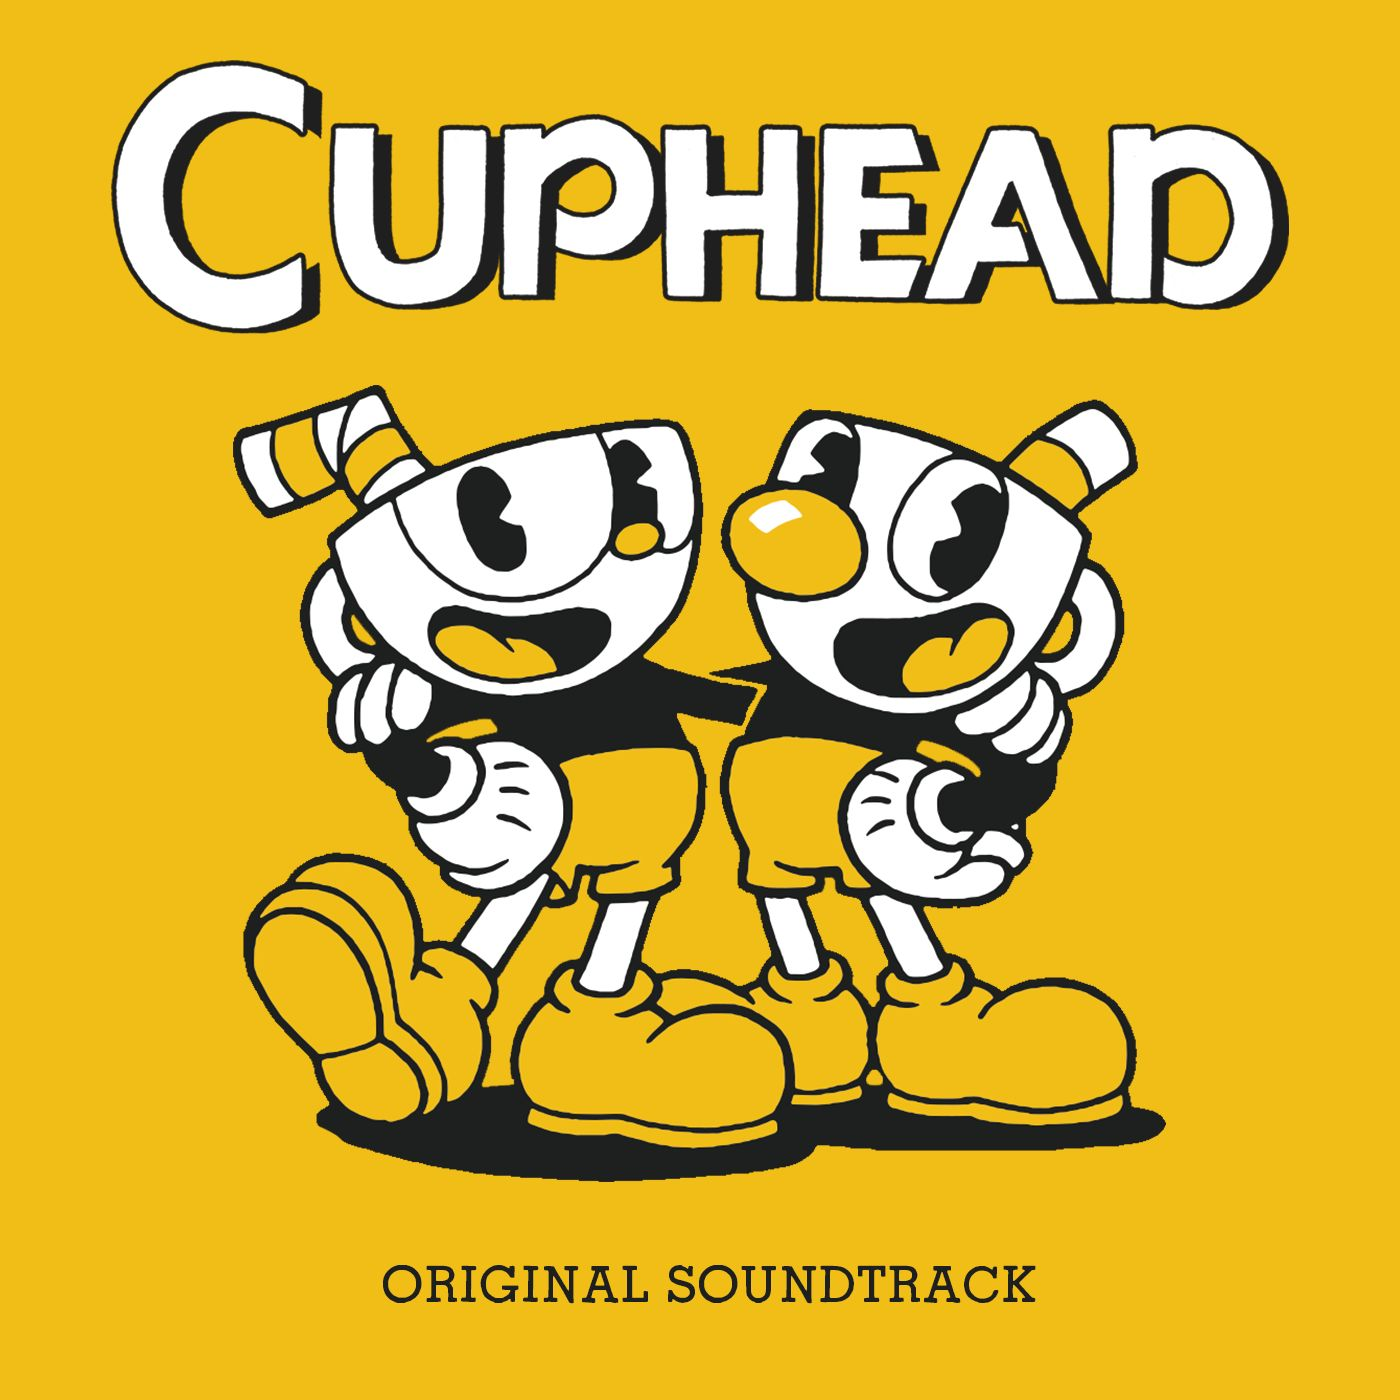 Саундтрек/Soundtrack Cuphead | Kristofer Maddigan (2017) Кристофер Маддиган